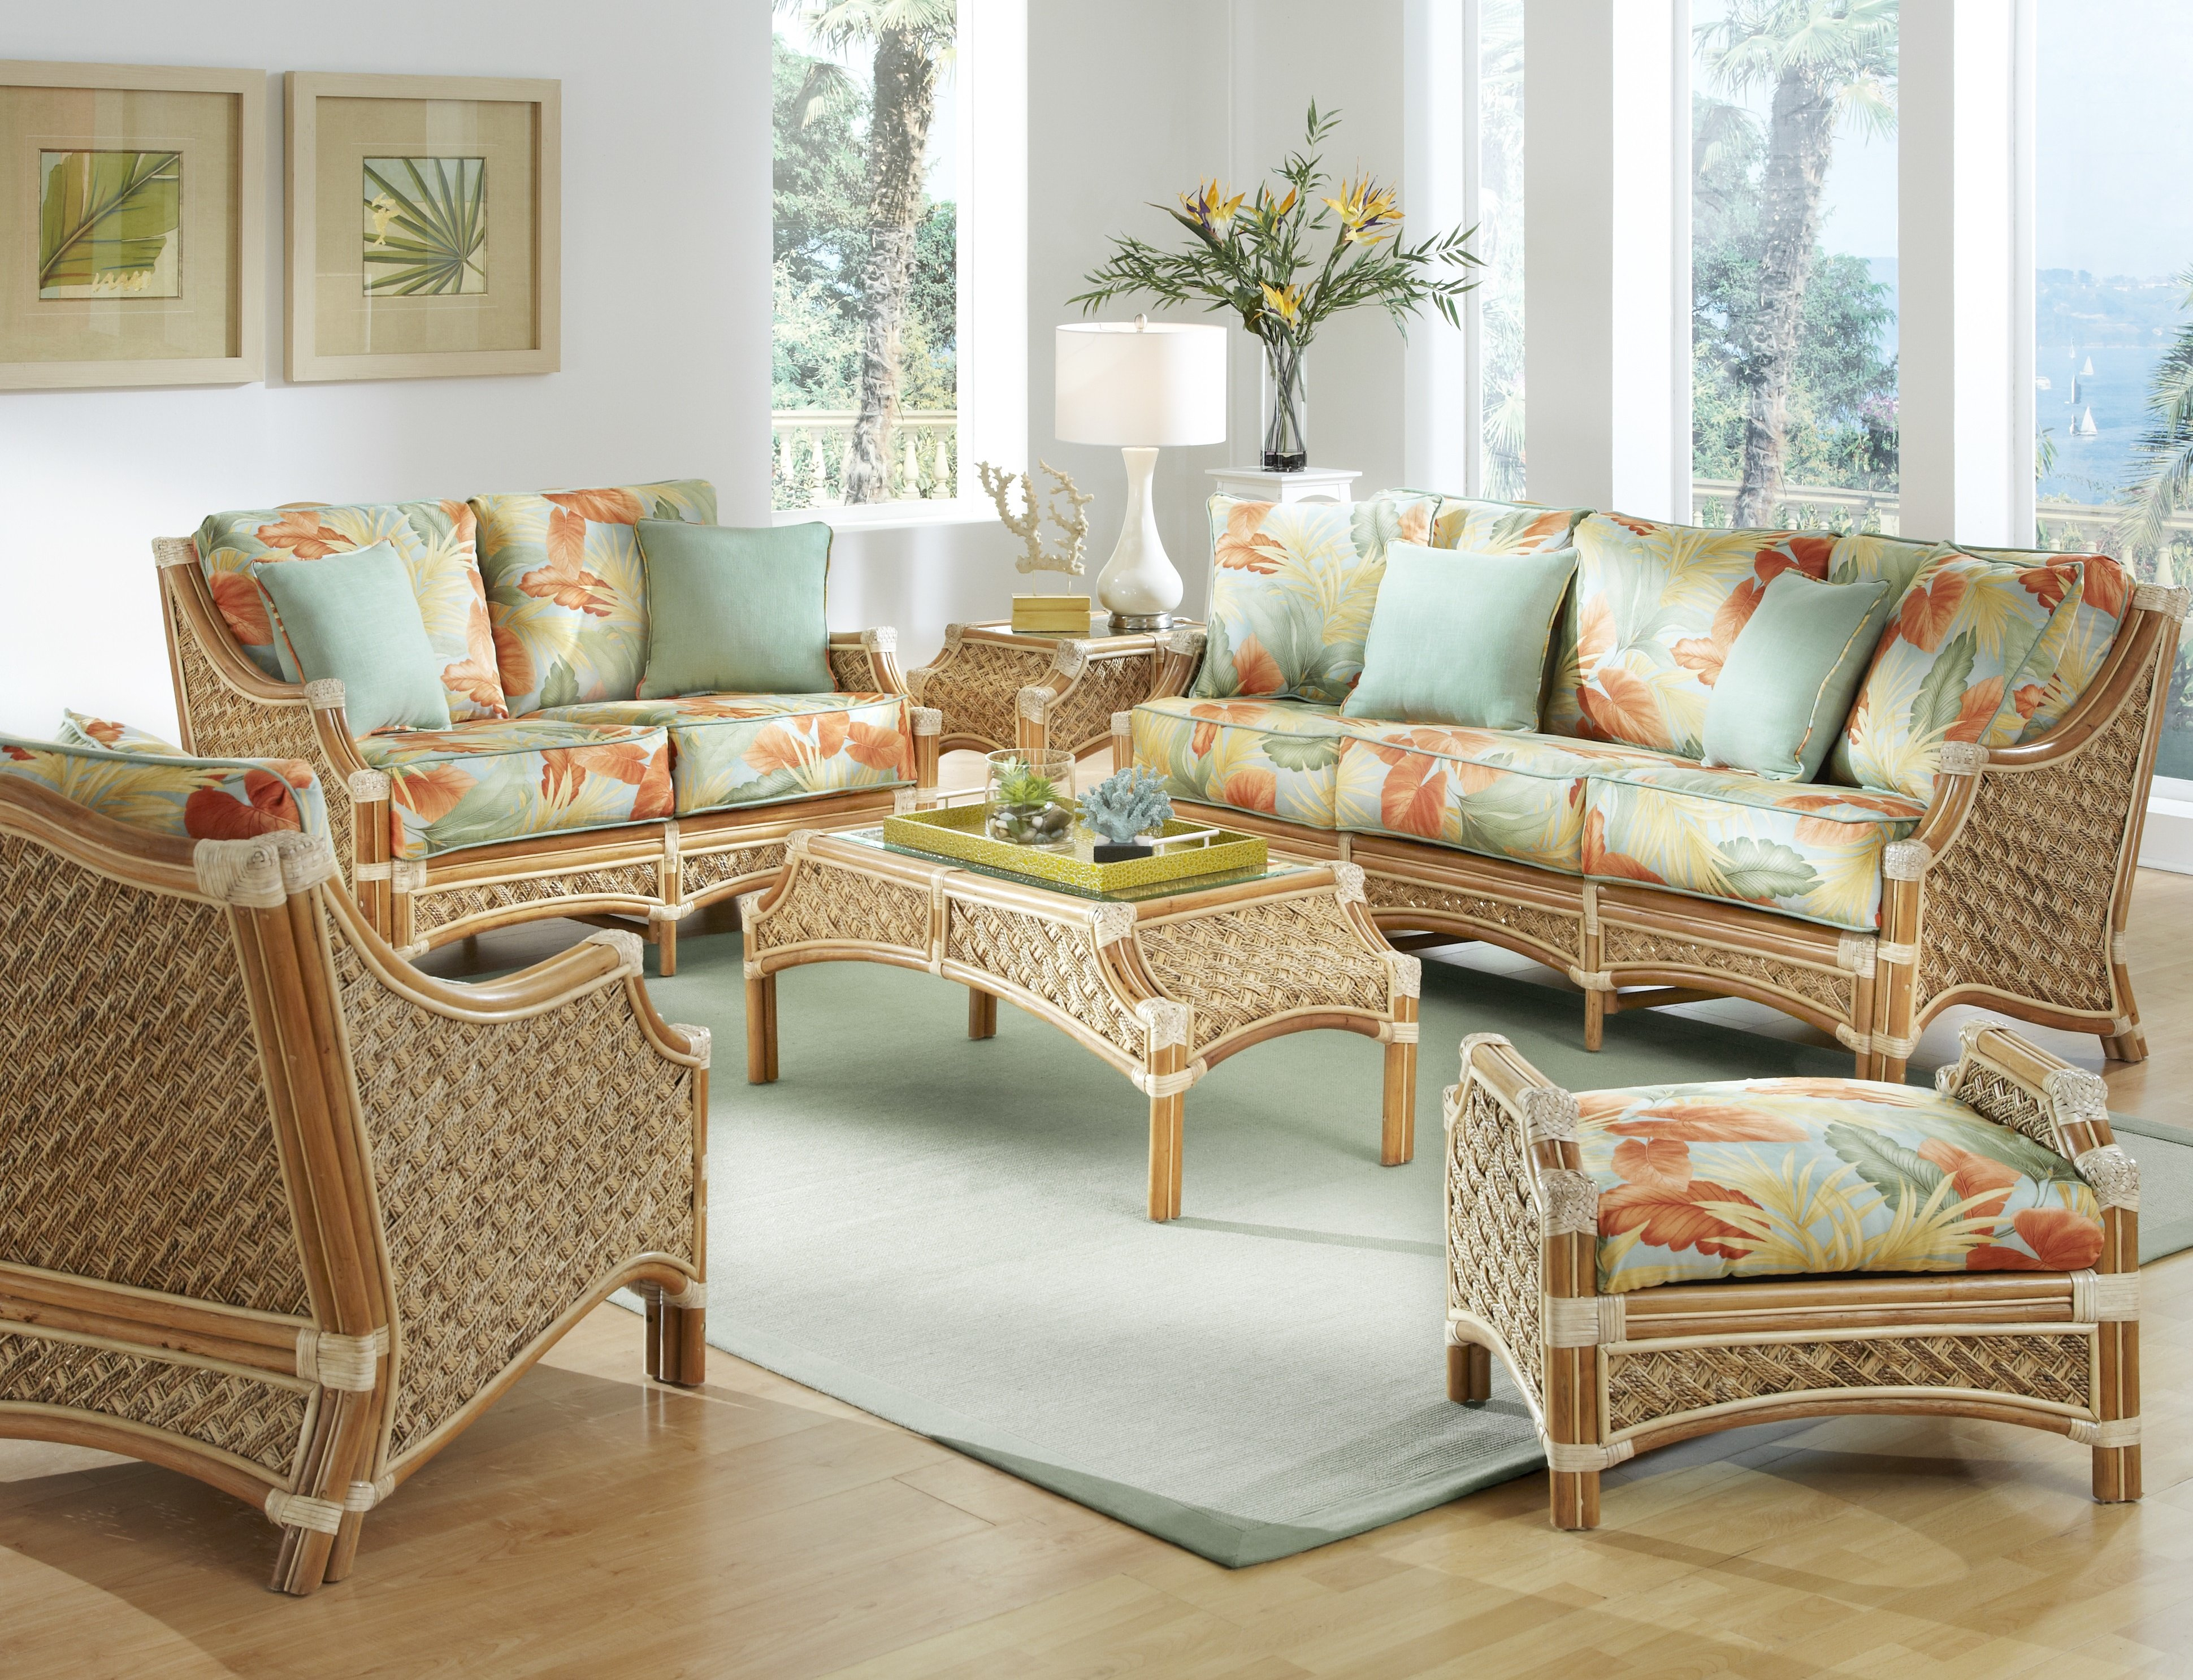 Bay Isle Home Schmitz 6 Piece Living Room Set Wayfair with 13 Smart Designs of How to Makeover 6 Piece Living Room Set